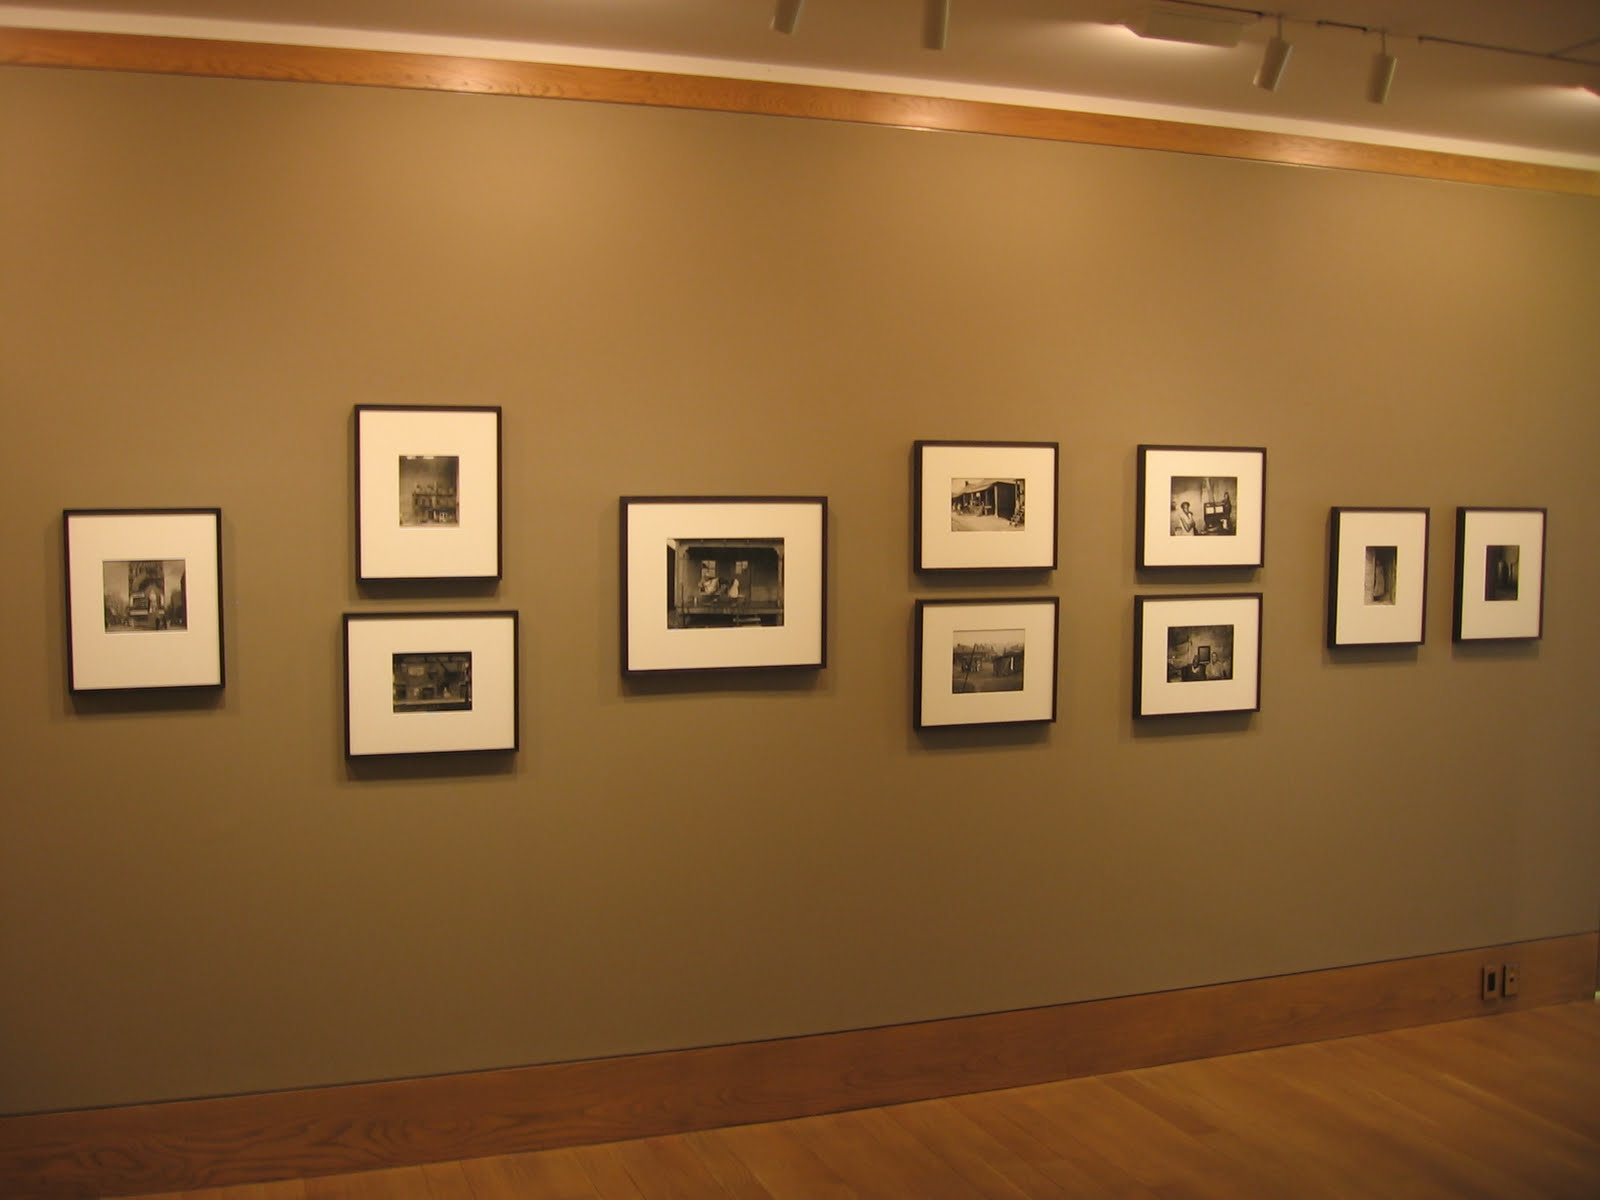 ... and hung against brown walls in the main gallery space.